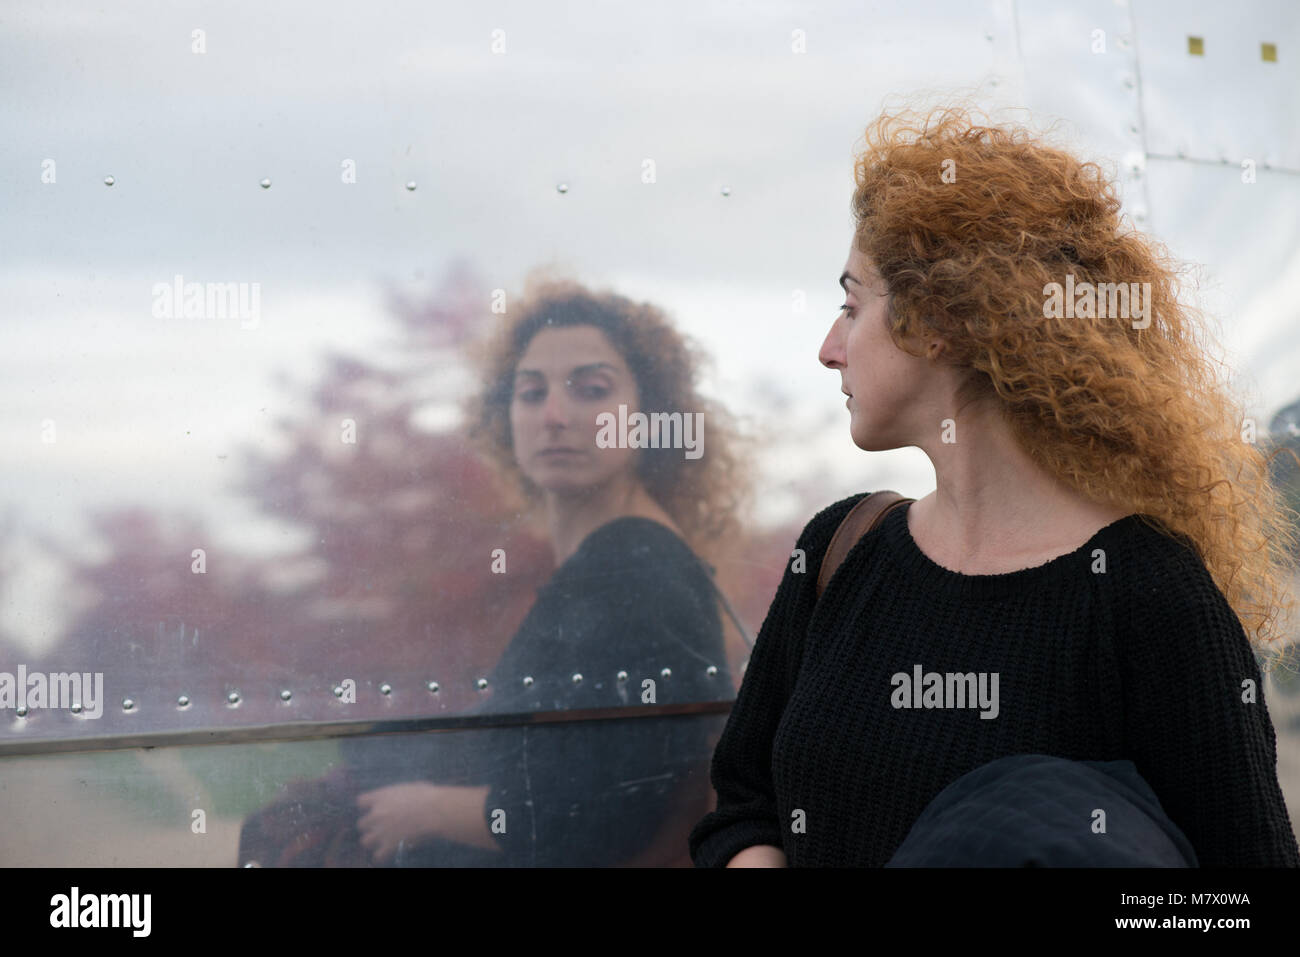 woman taking a passing look at reflection in side of American style diner like a huge mirror - Stock Image